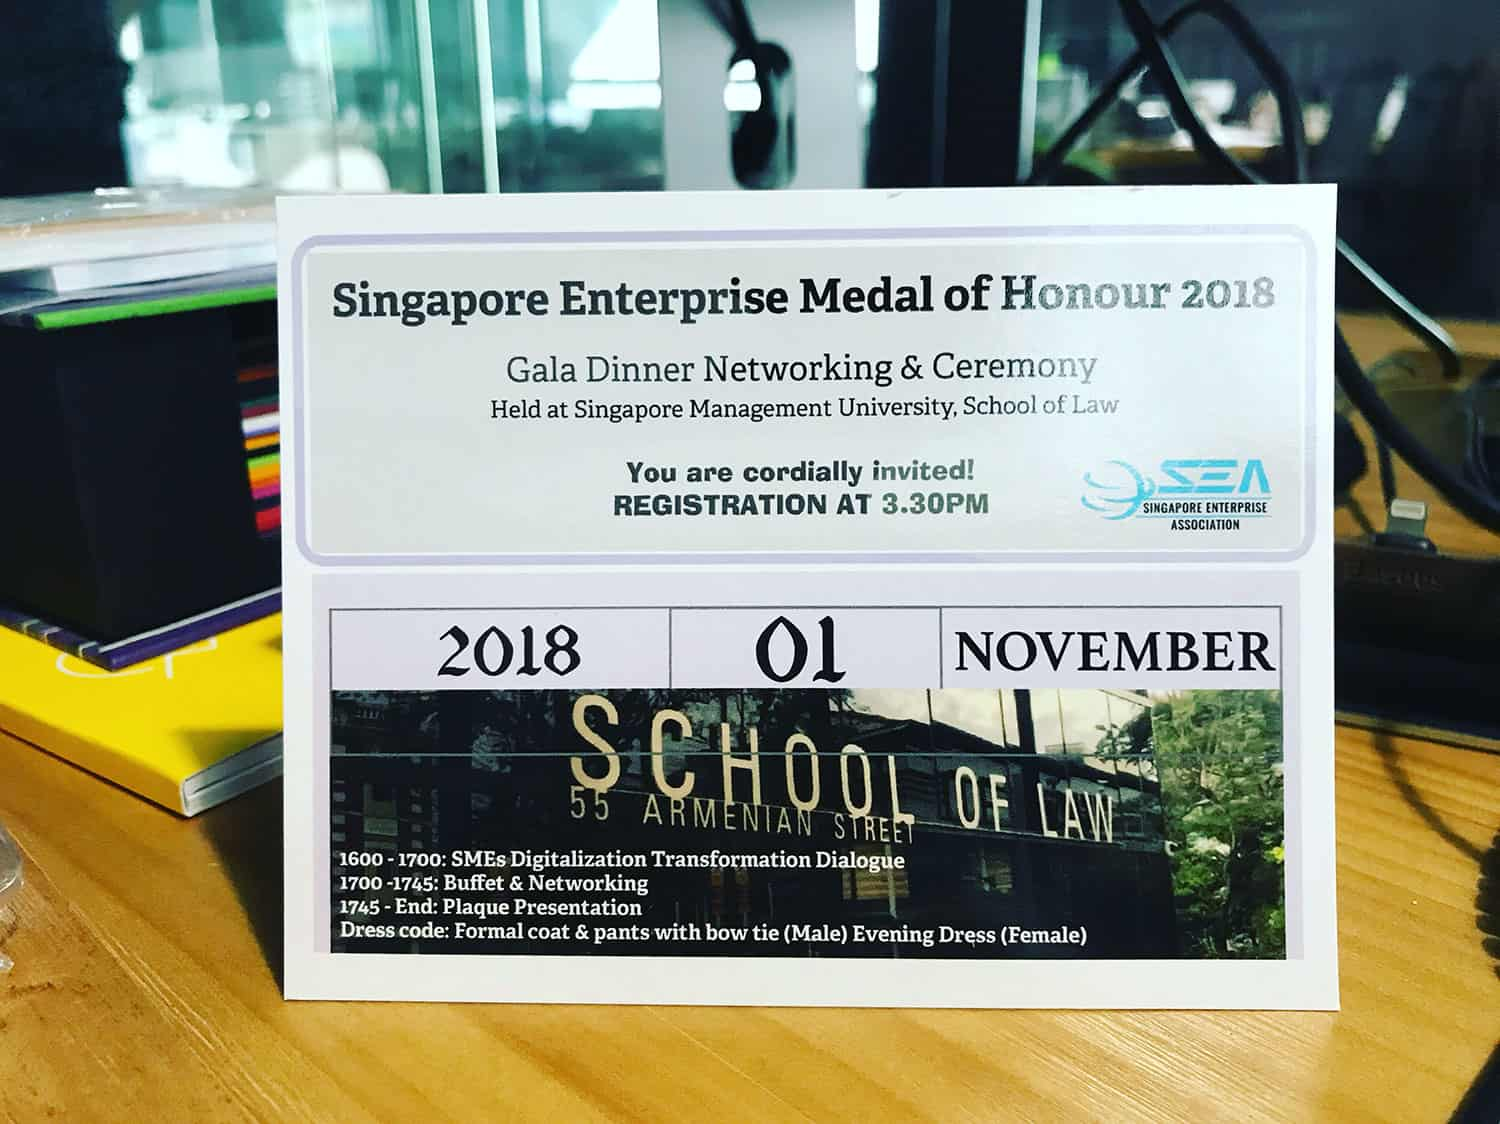 Intercorp is nominated for Singapore Enterprise Medal of Honour 2018!